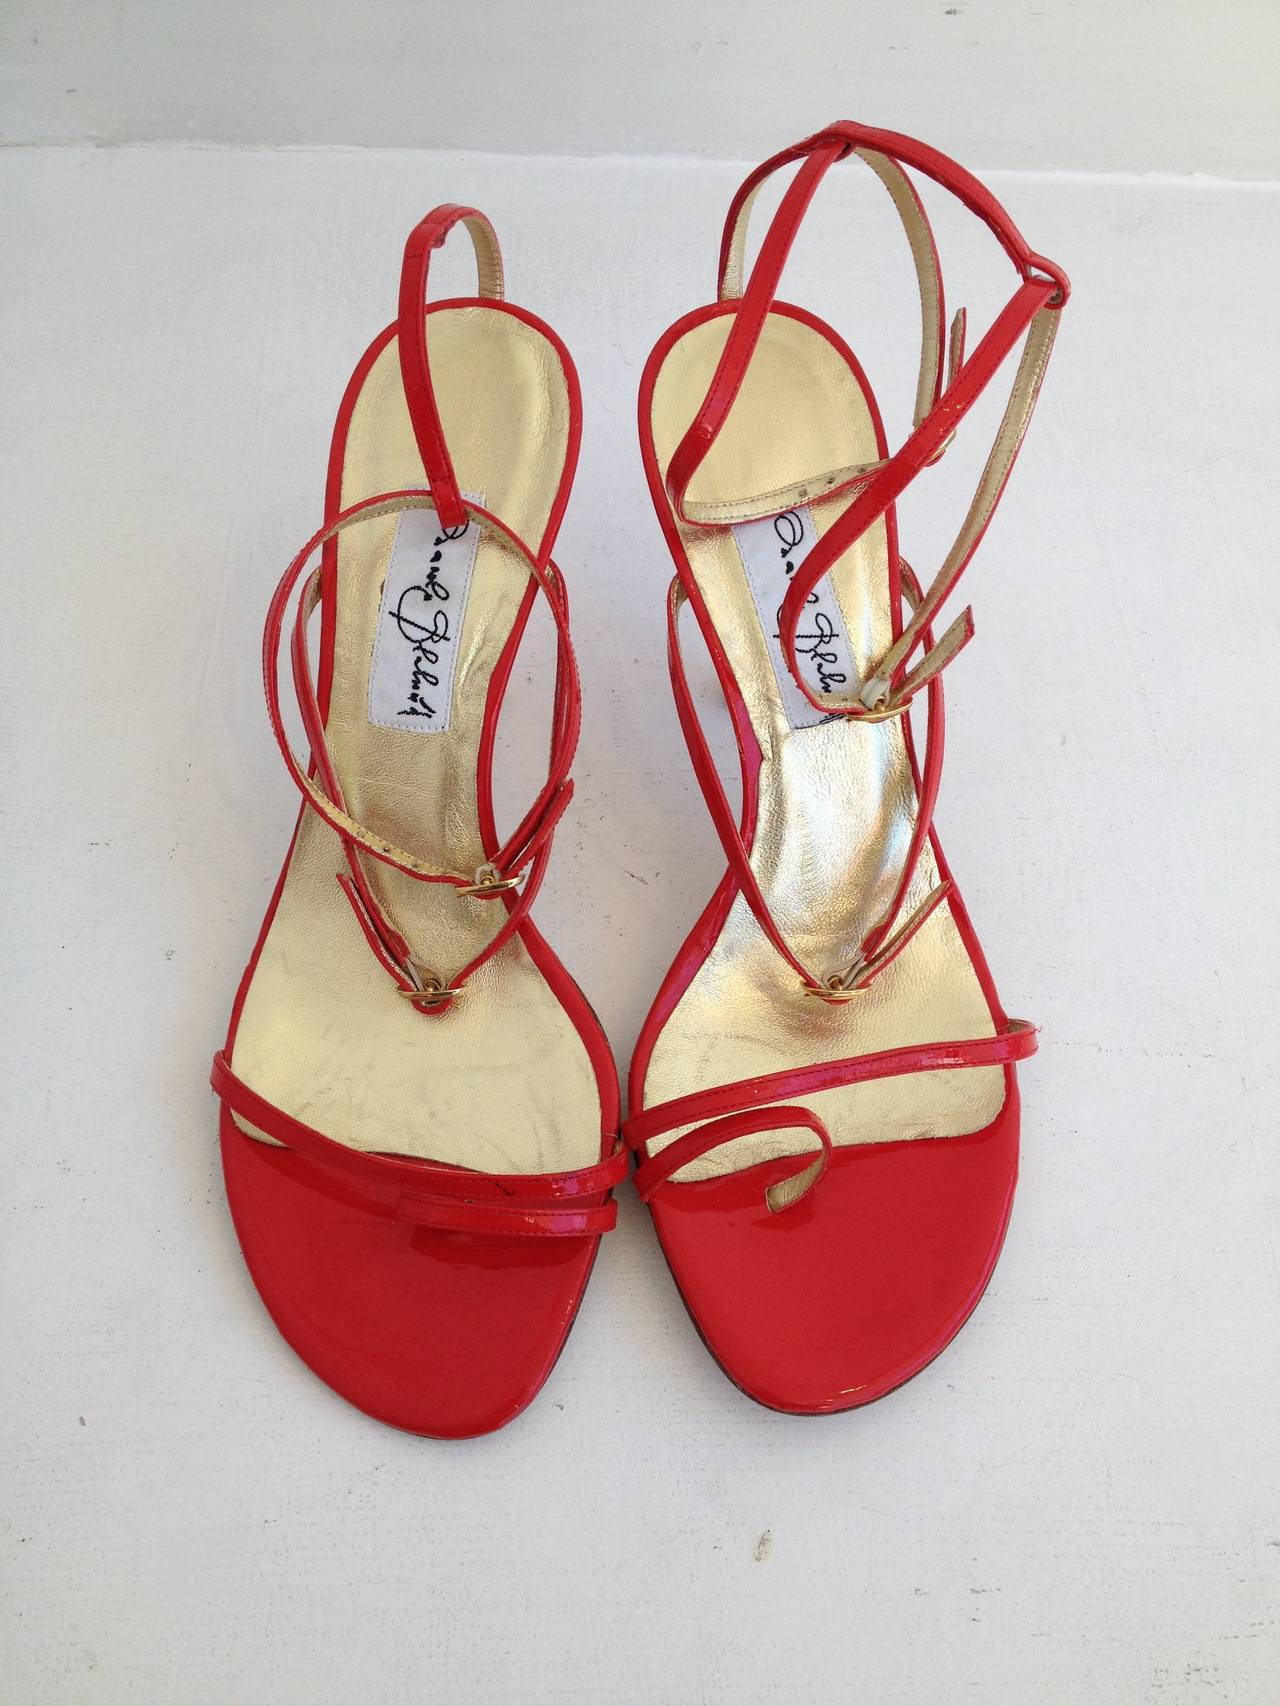 Manolo Blahnik Red Patent Leather Strappy Heels At 1stdibs